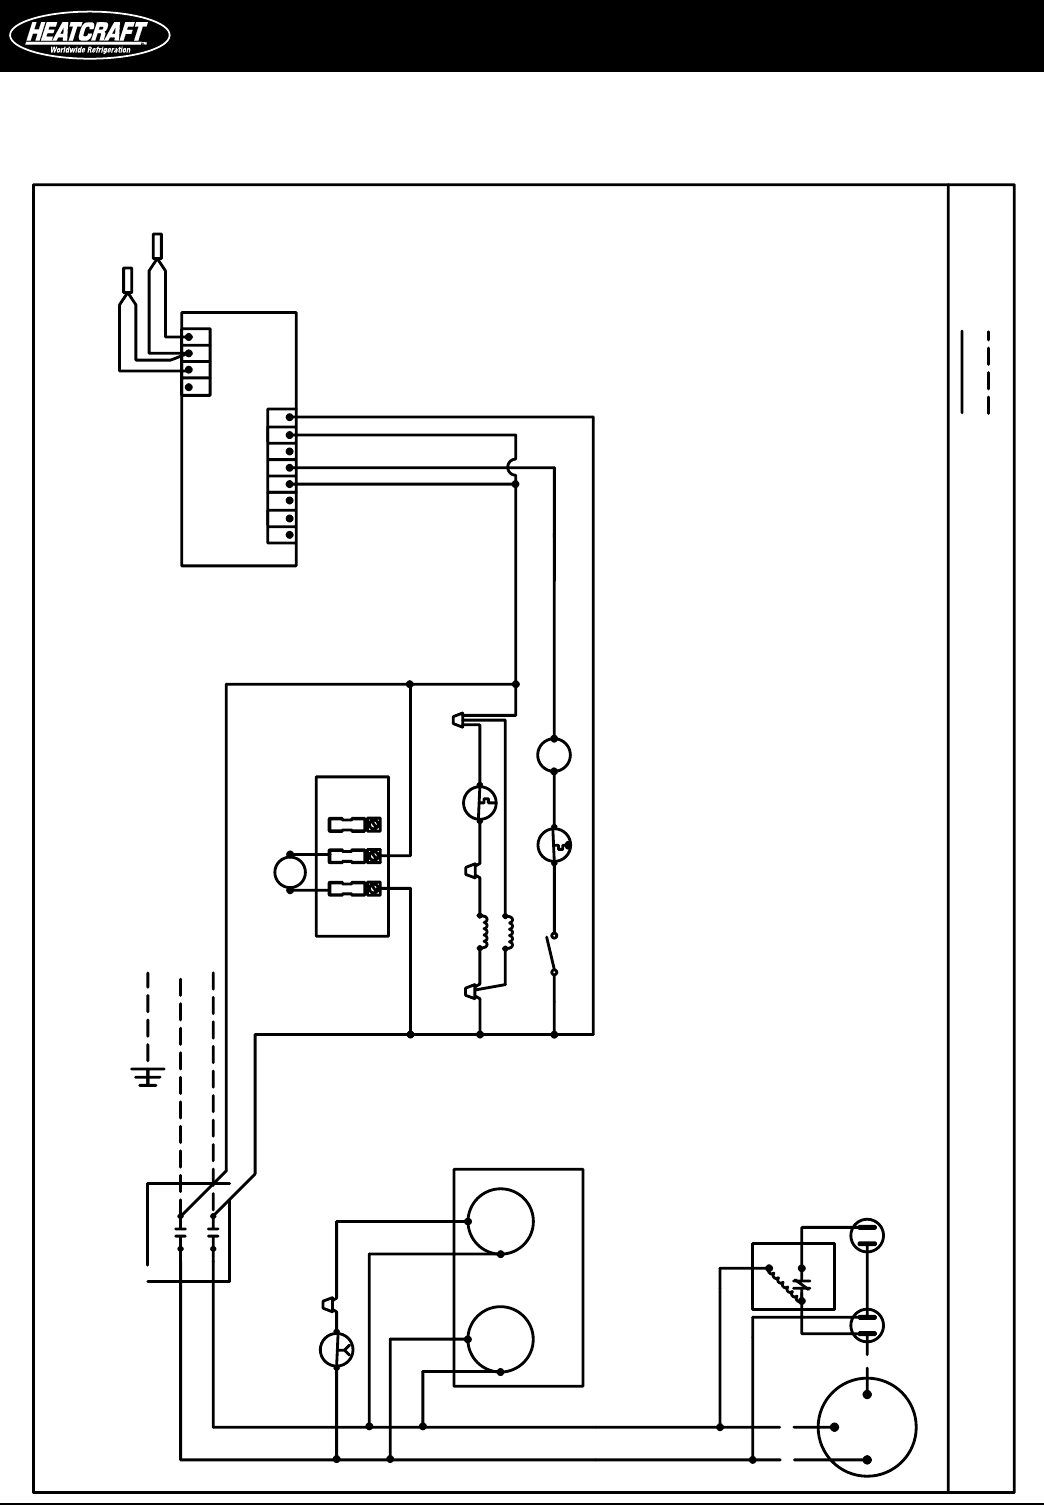 55587f91 c859 def4 0921 730c5709c050 bg10 page 16 of heatcraft refrigeration products refrigerator pro3 user on heatcraft wiring diagram